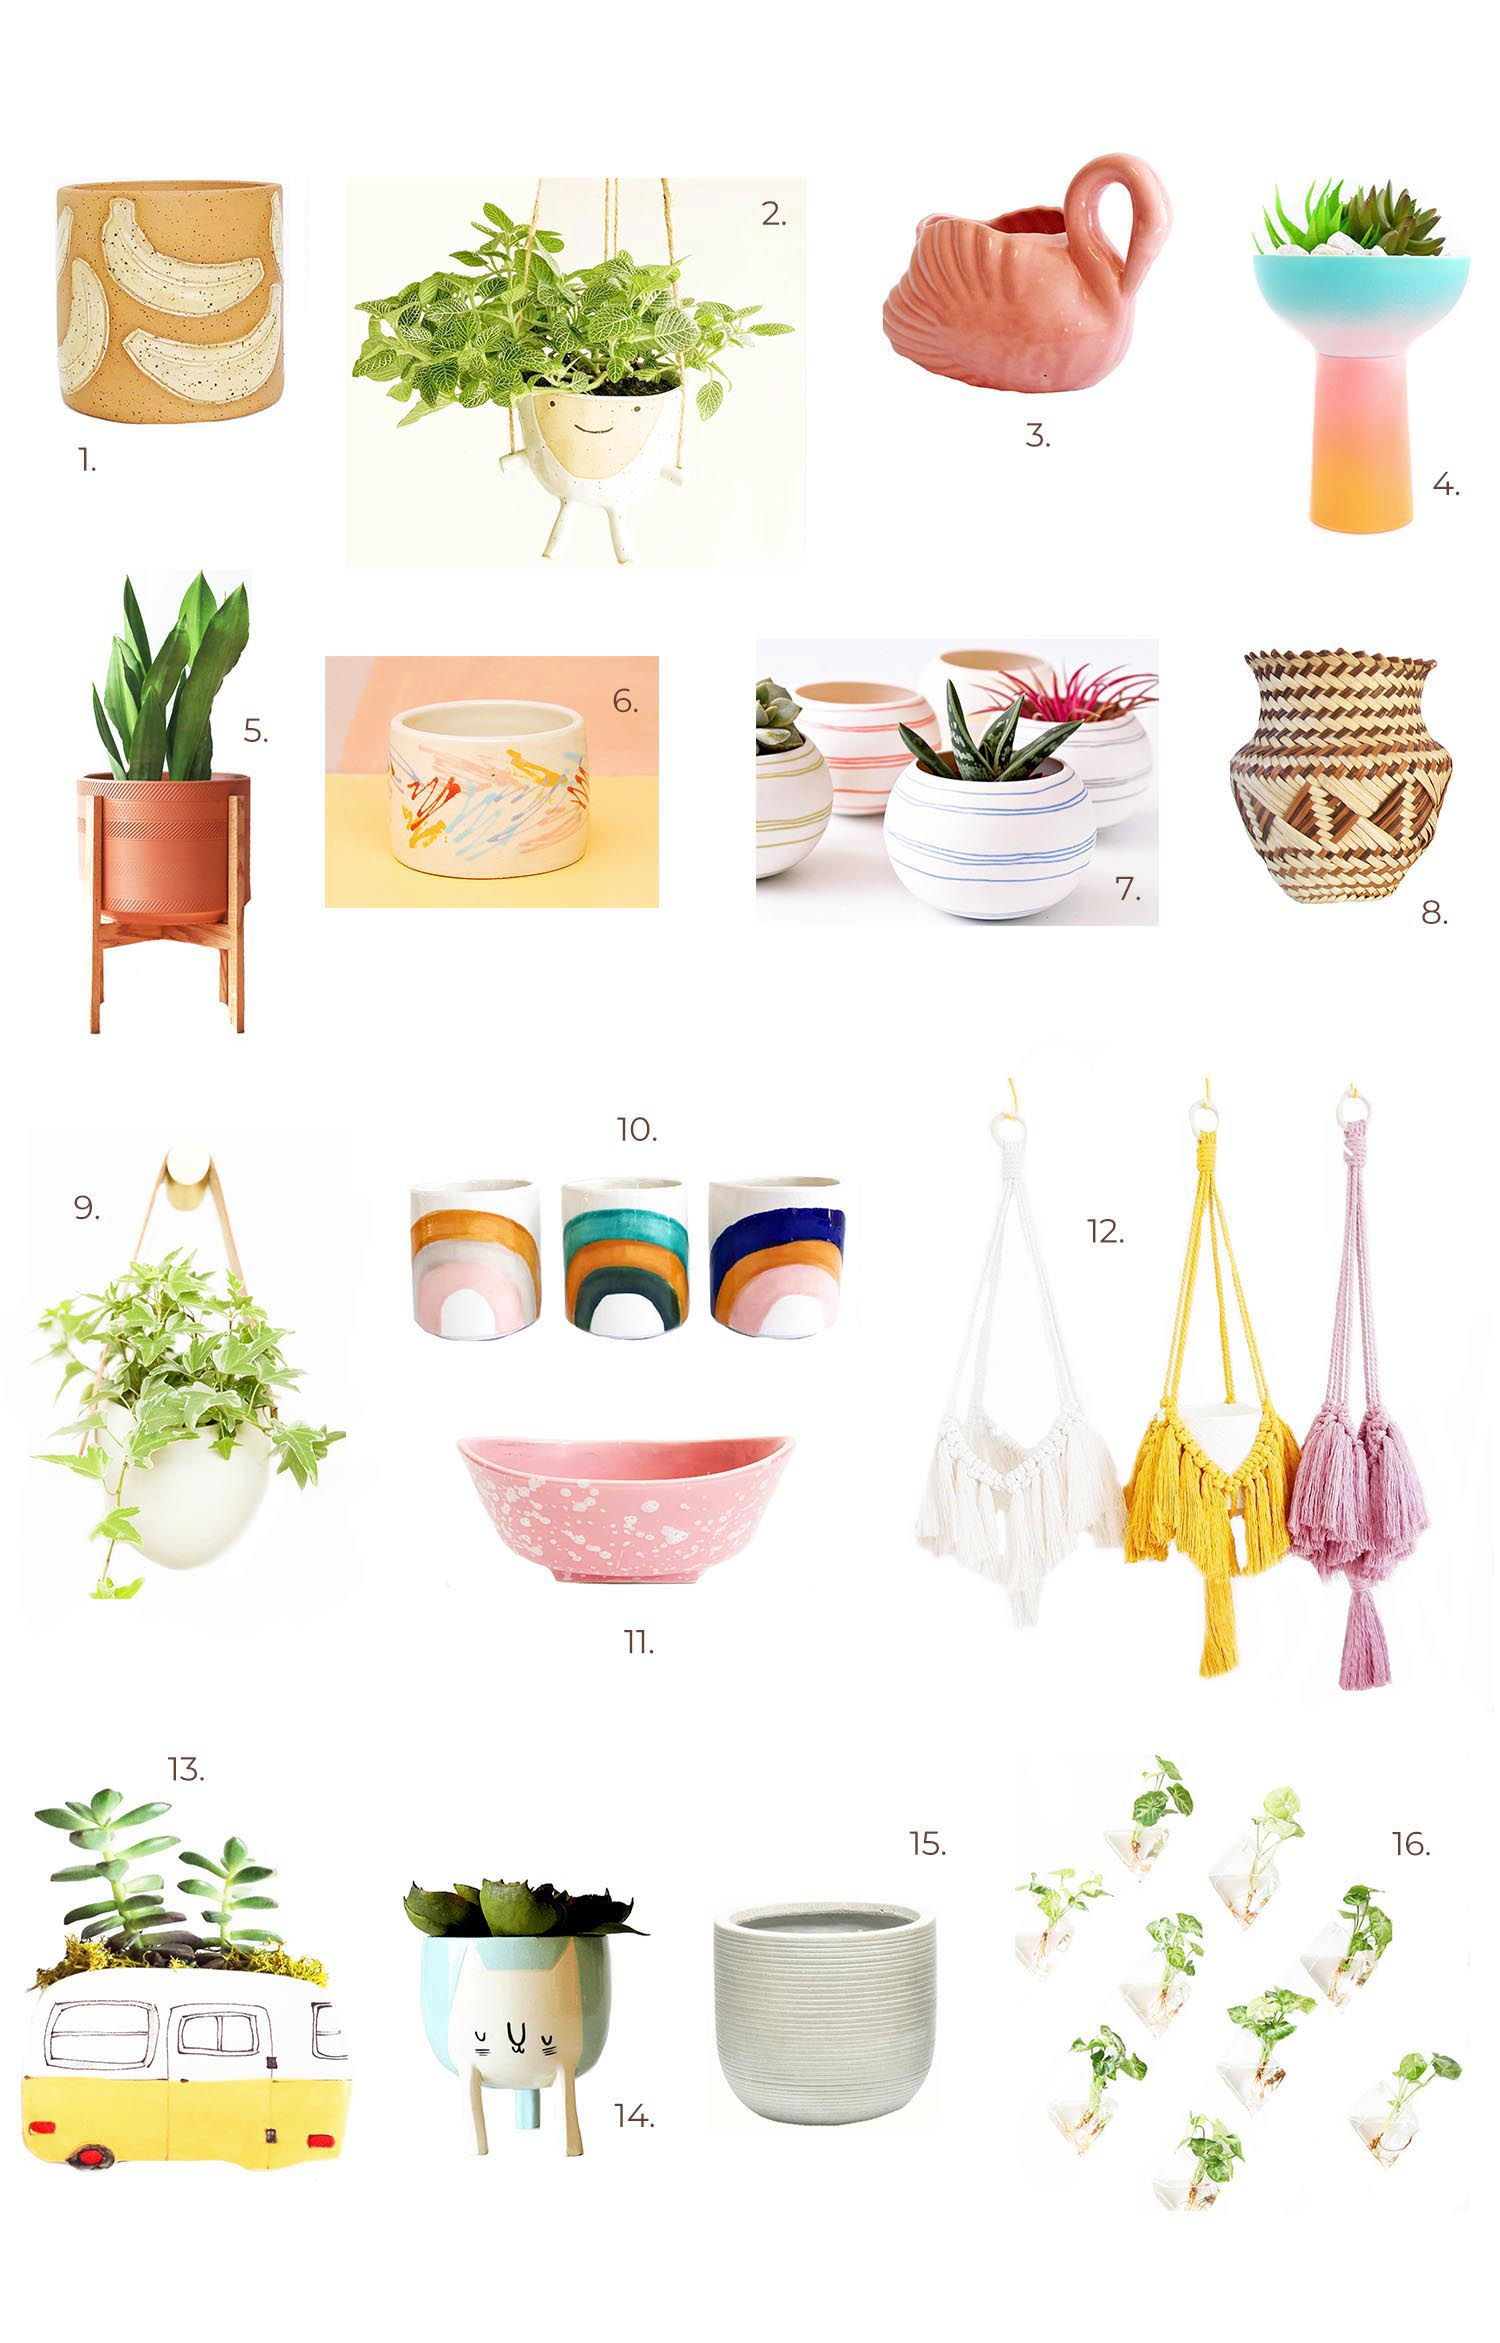 Our Favorite Planters on Etsy!